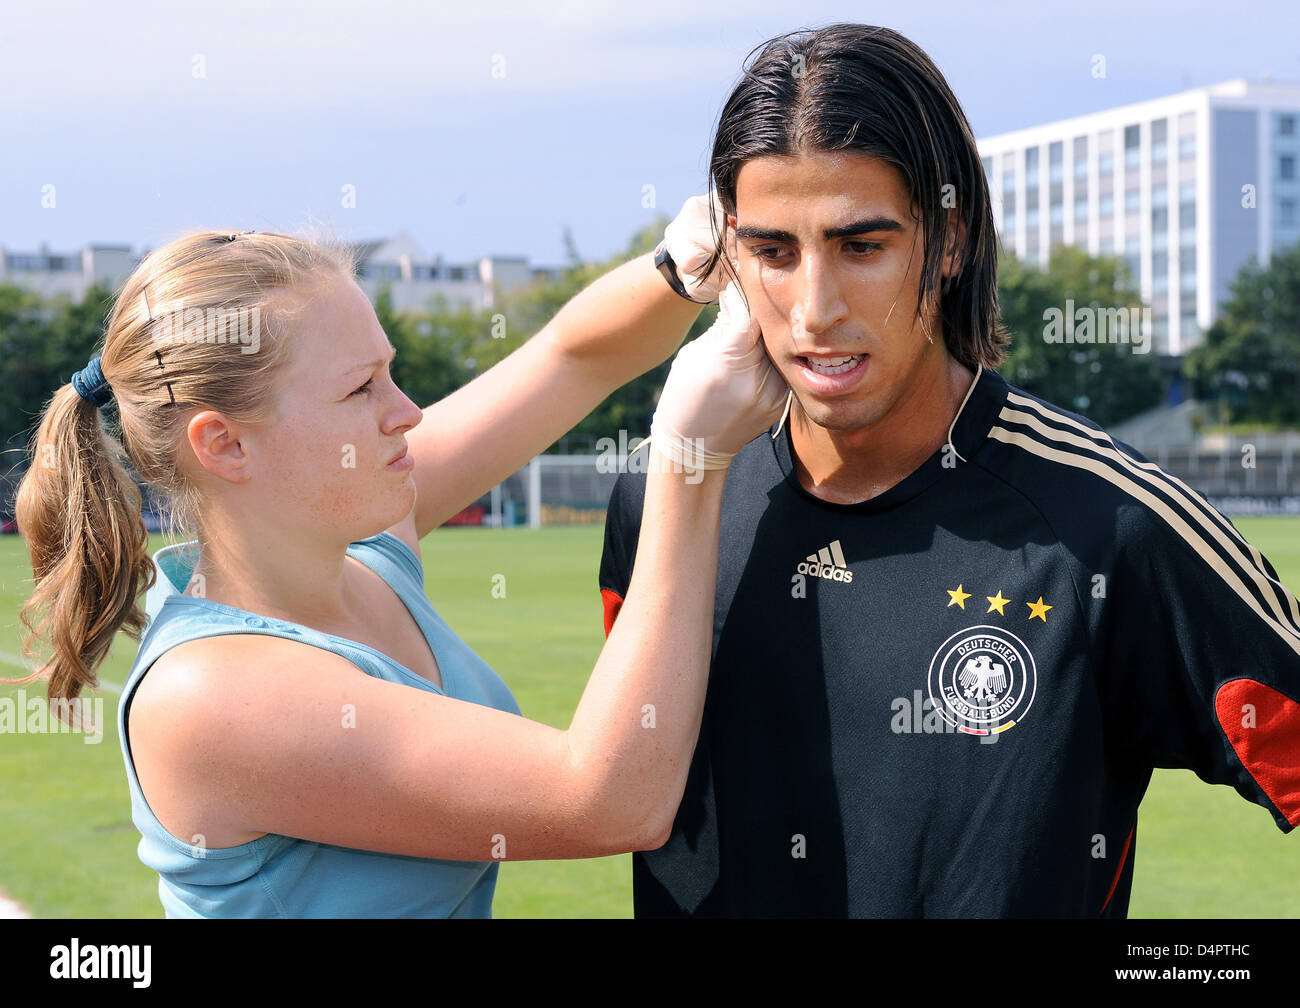 pthc russian Germany international Sami Khedira bears with a lactate test of the German squad in Cologne,